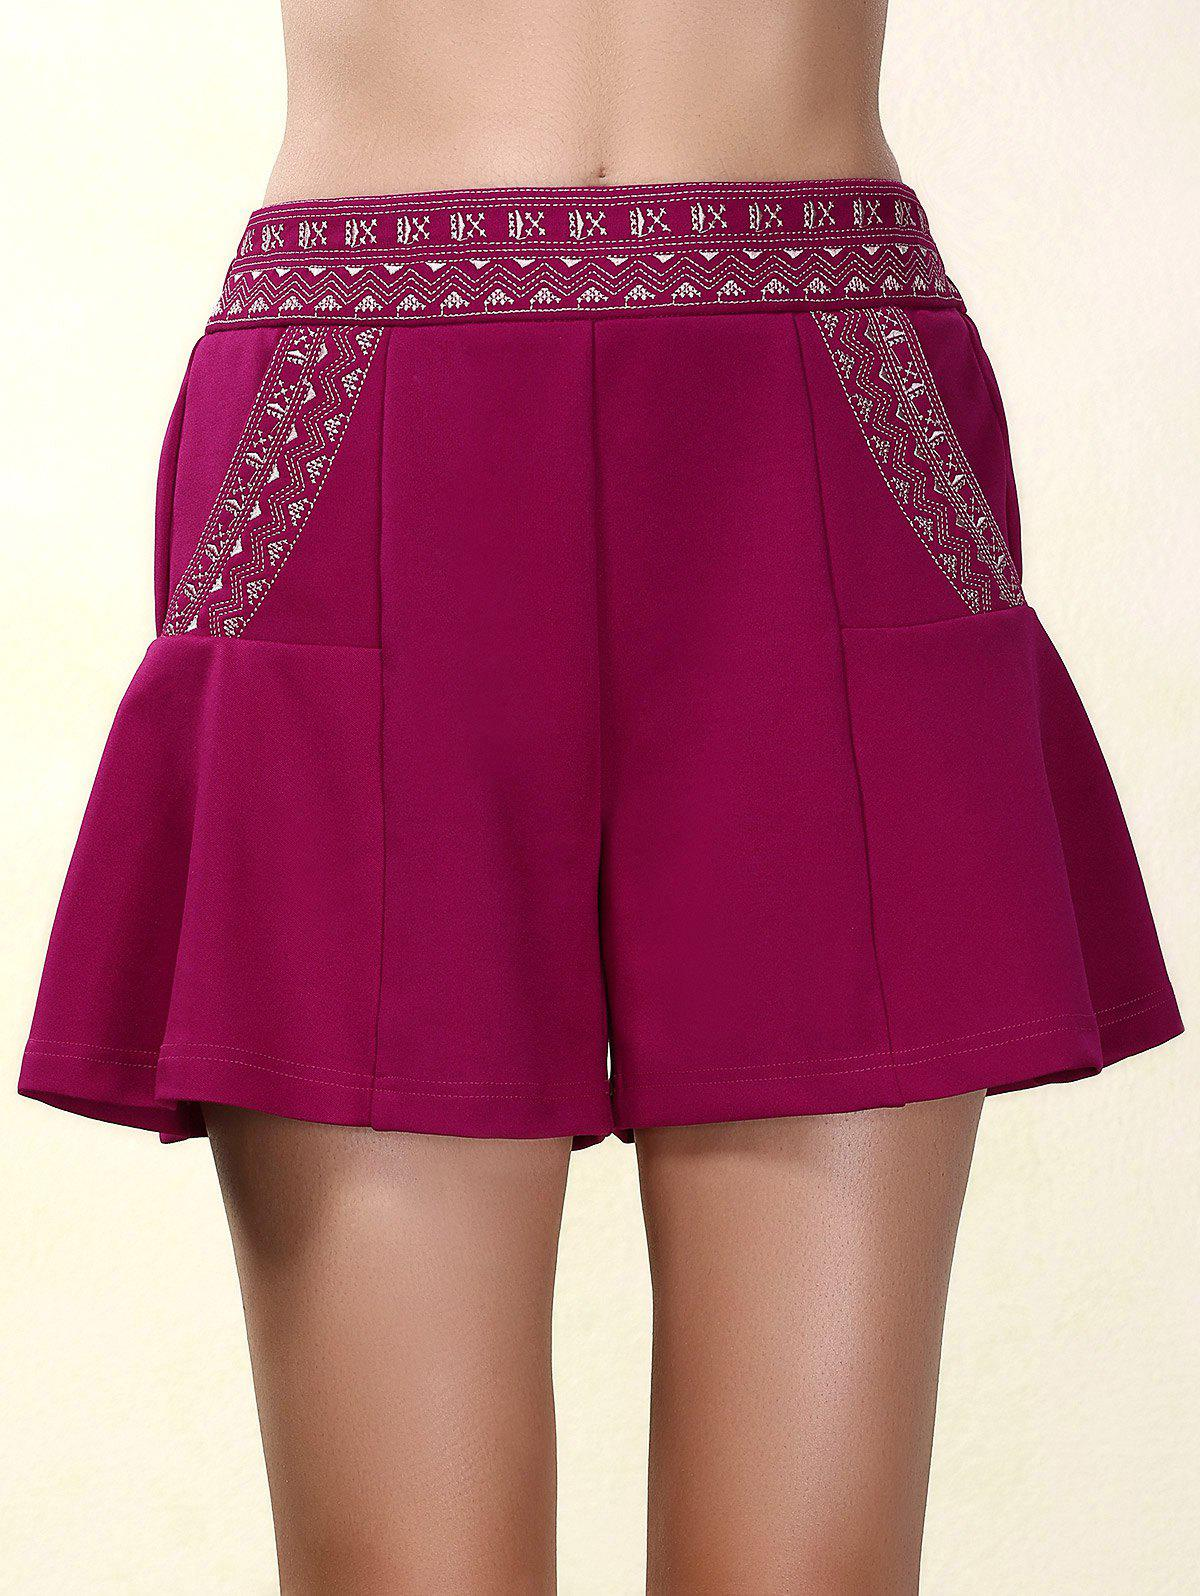 Ethnic Style Elastic Waist Loose-Fitting Embroidered Women's Shorts